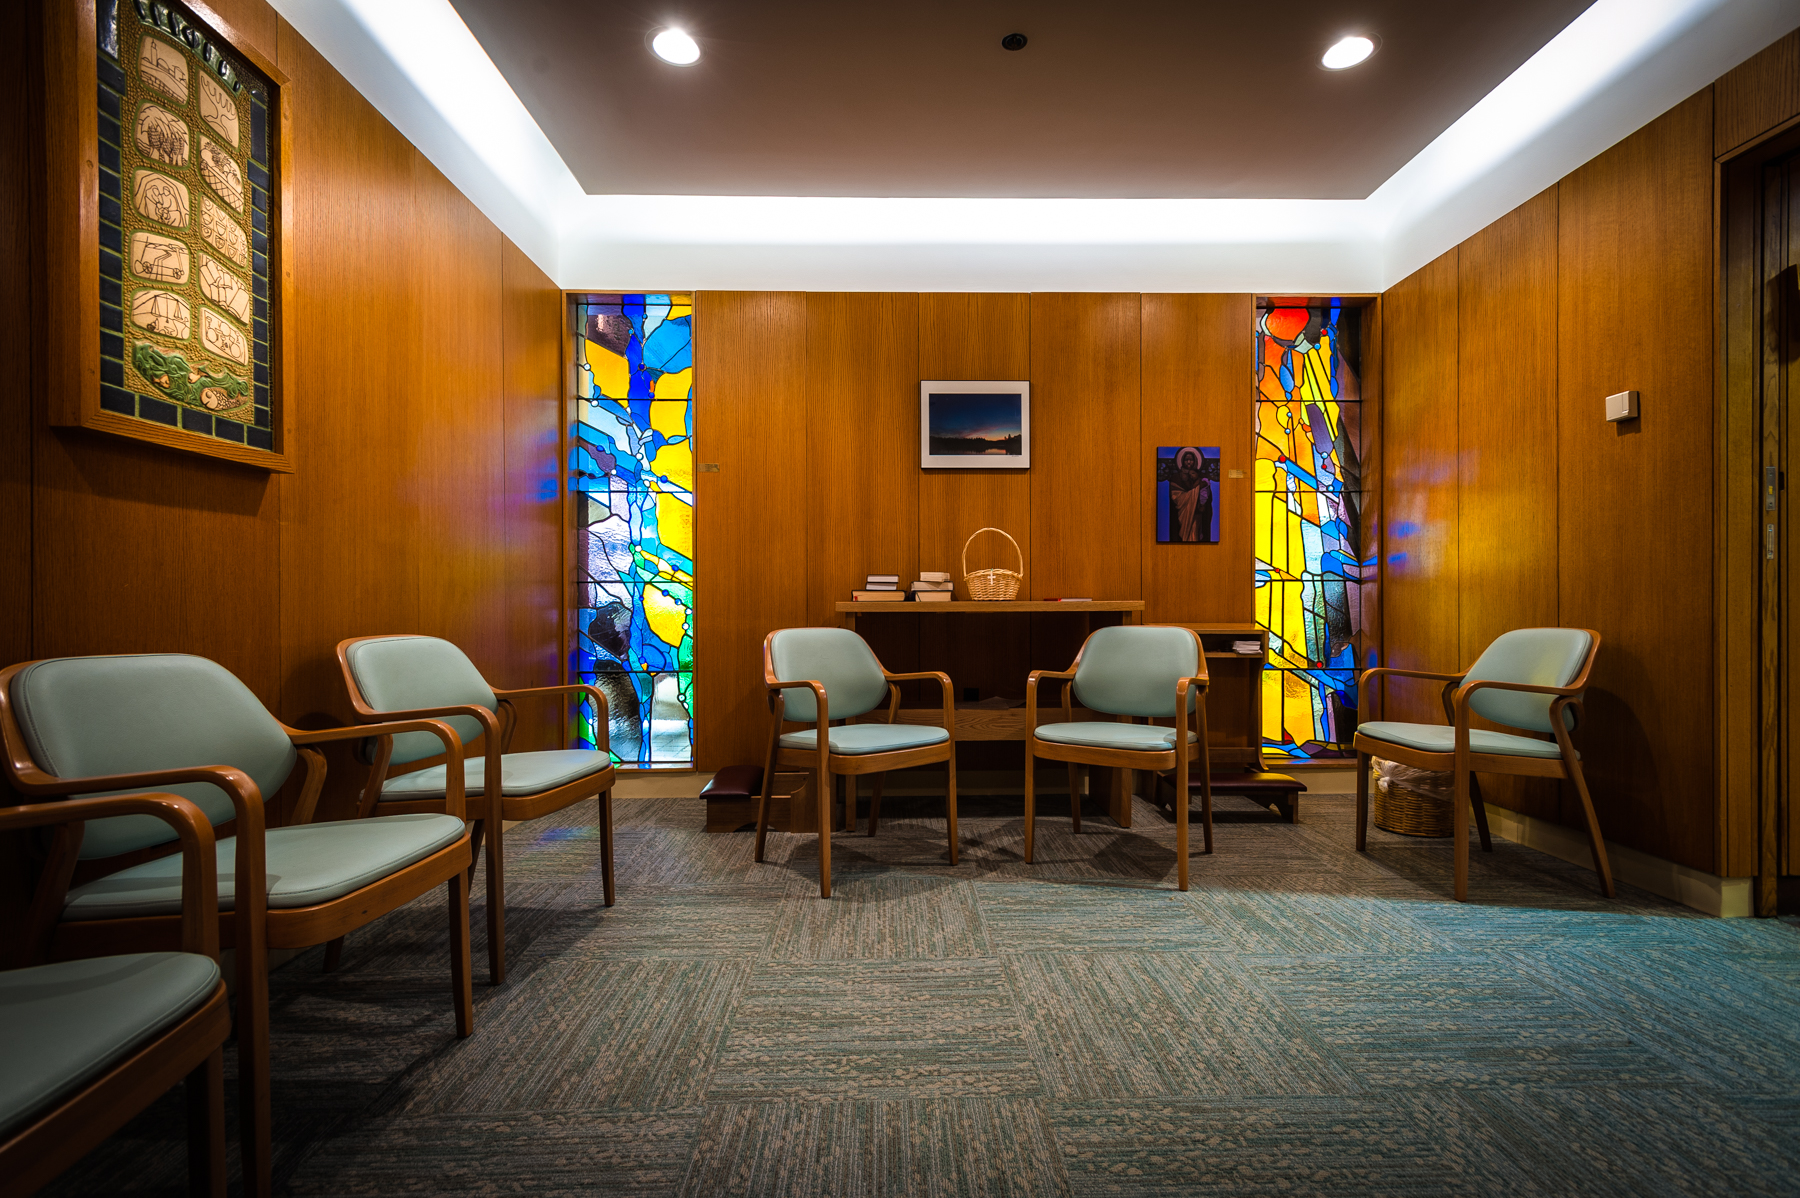 - Created in 1996 through the merger of Beth Israel Hospital and New England Deaconess Hospital, the Beth Israel Deaconess Medical Center has two chapels used regularly by families and staff.